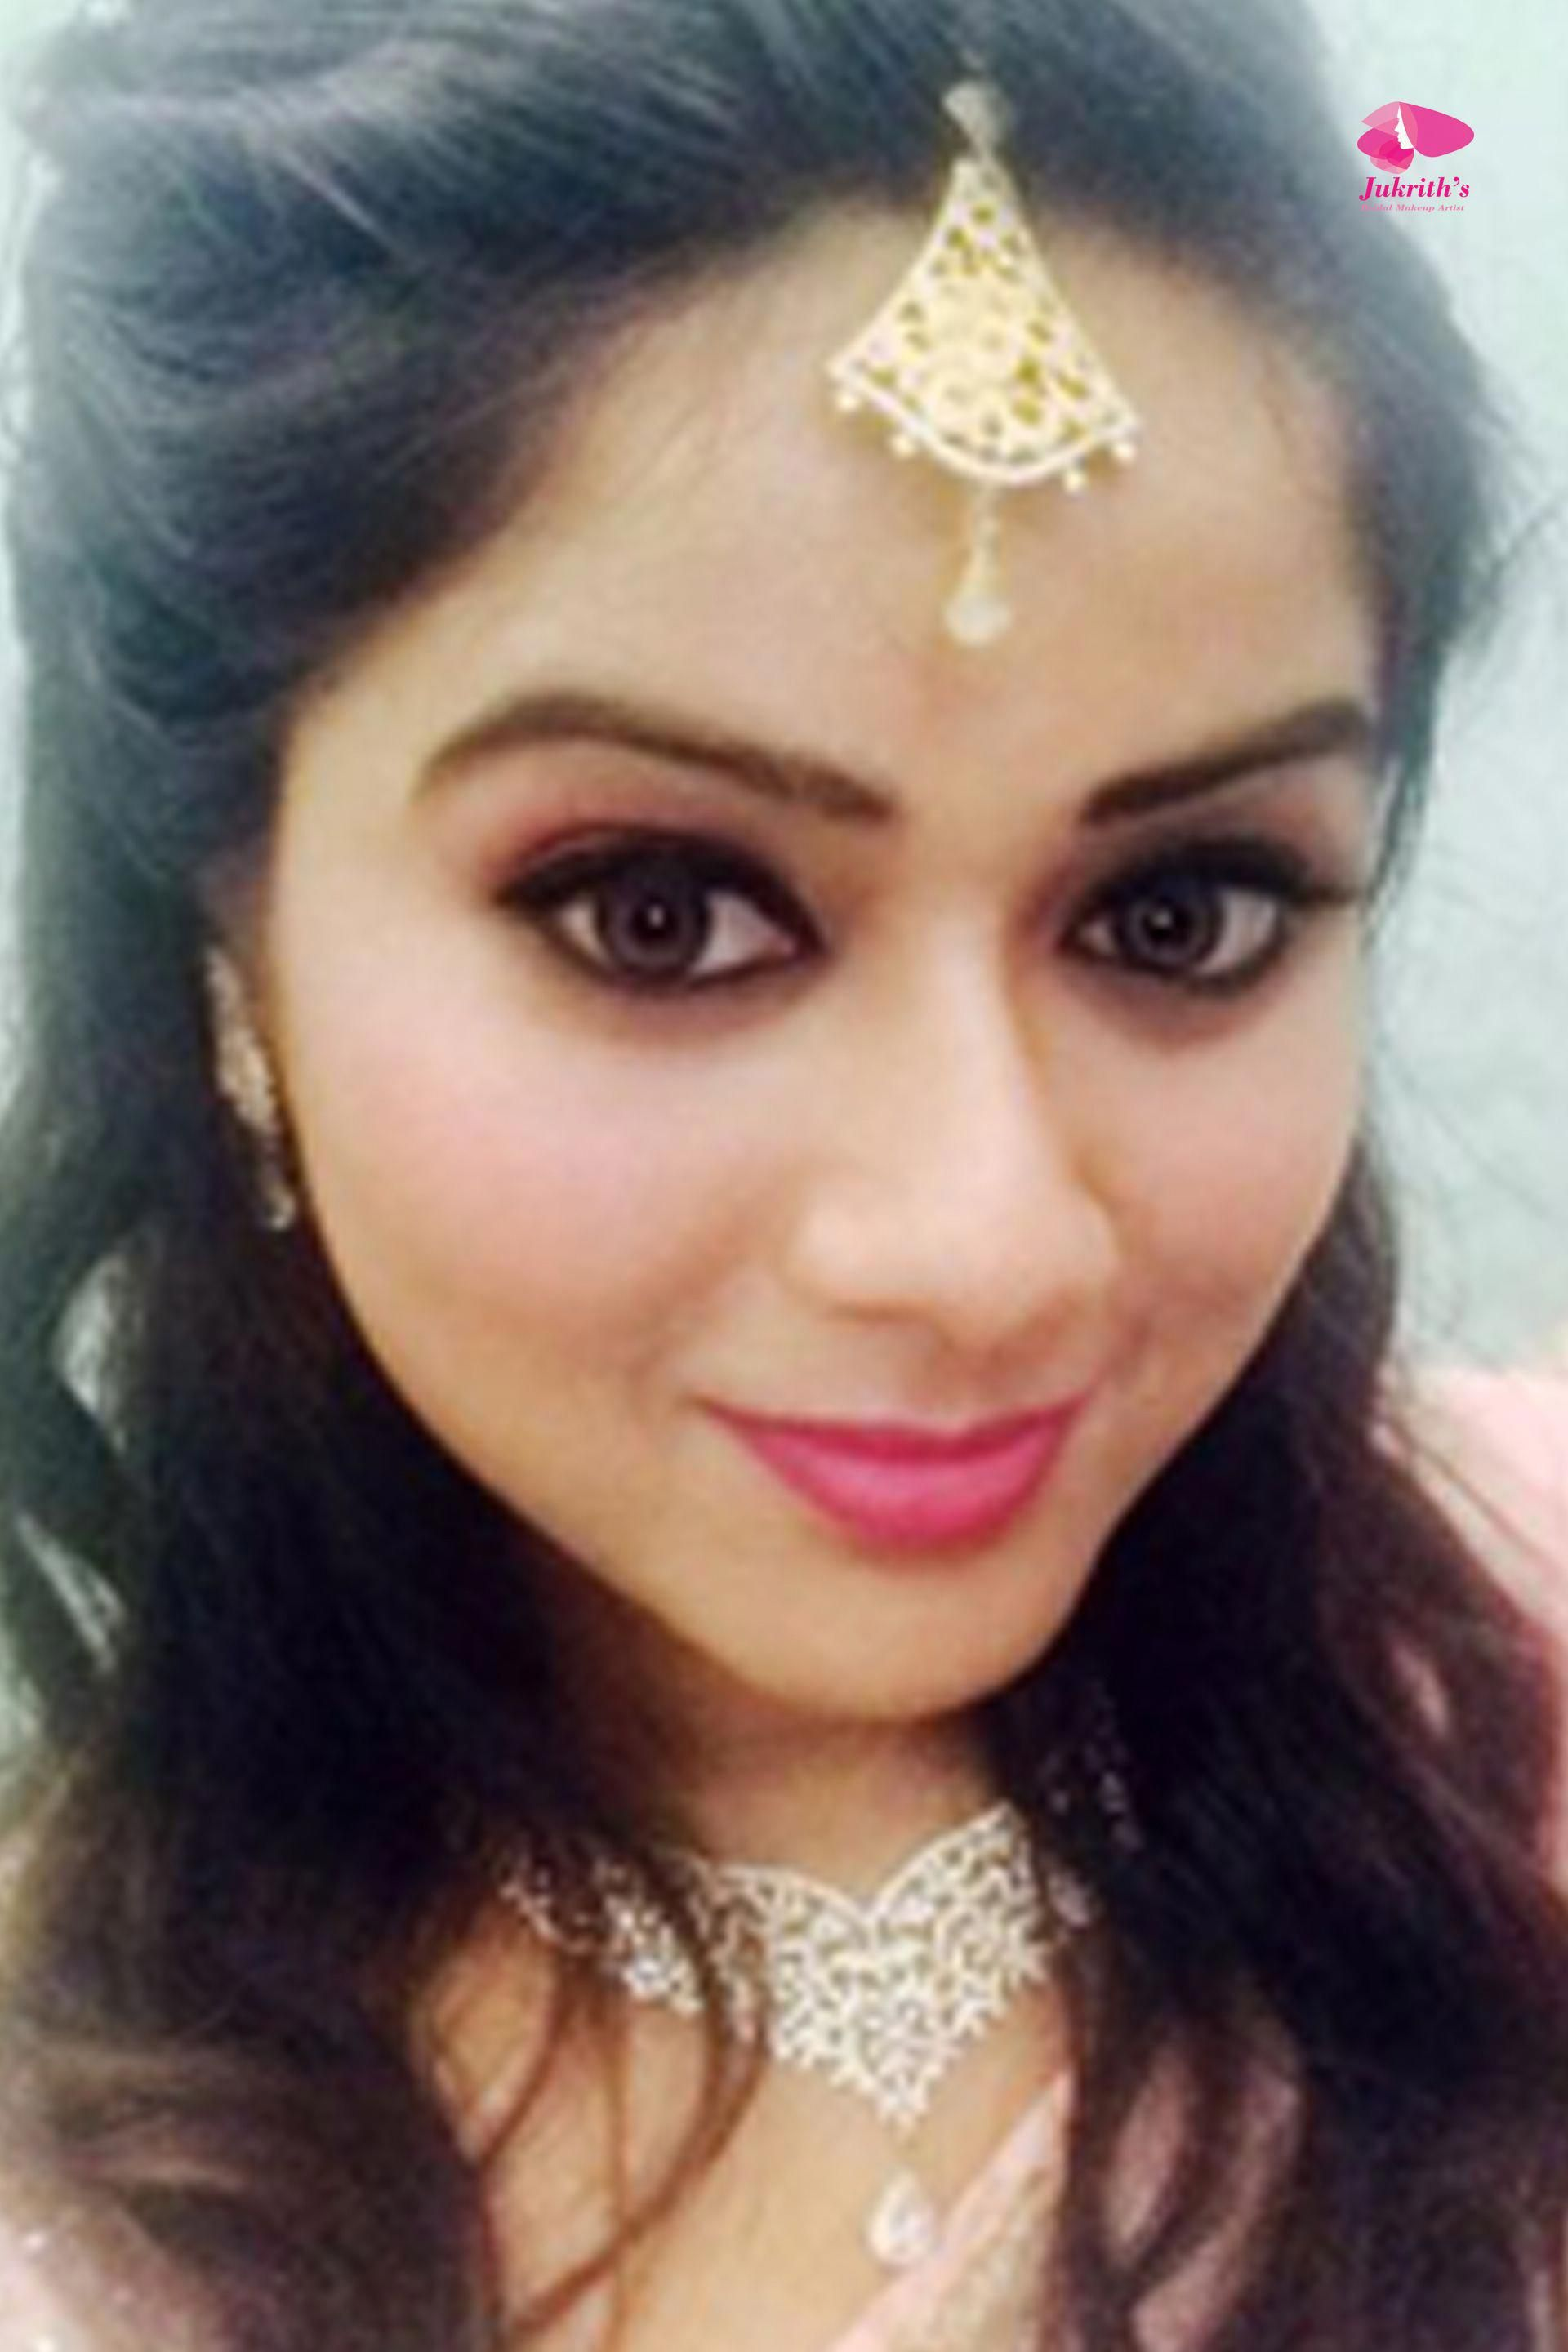 Jukrith's The Best Bridal Makeup Artist in Chennai For